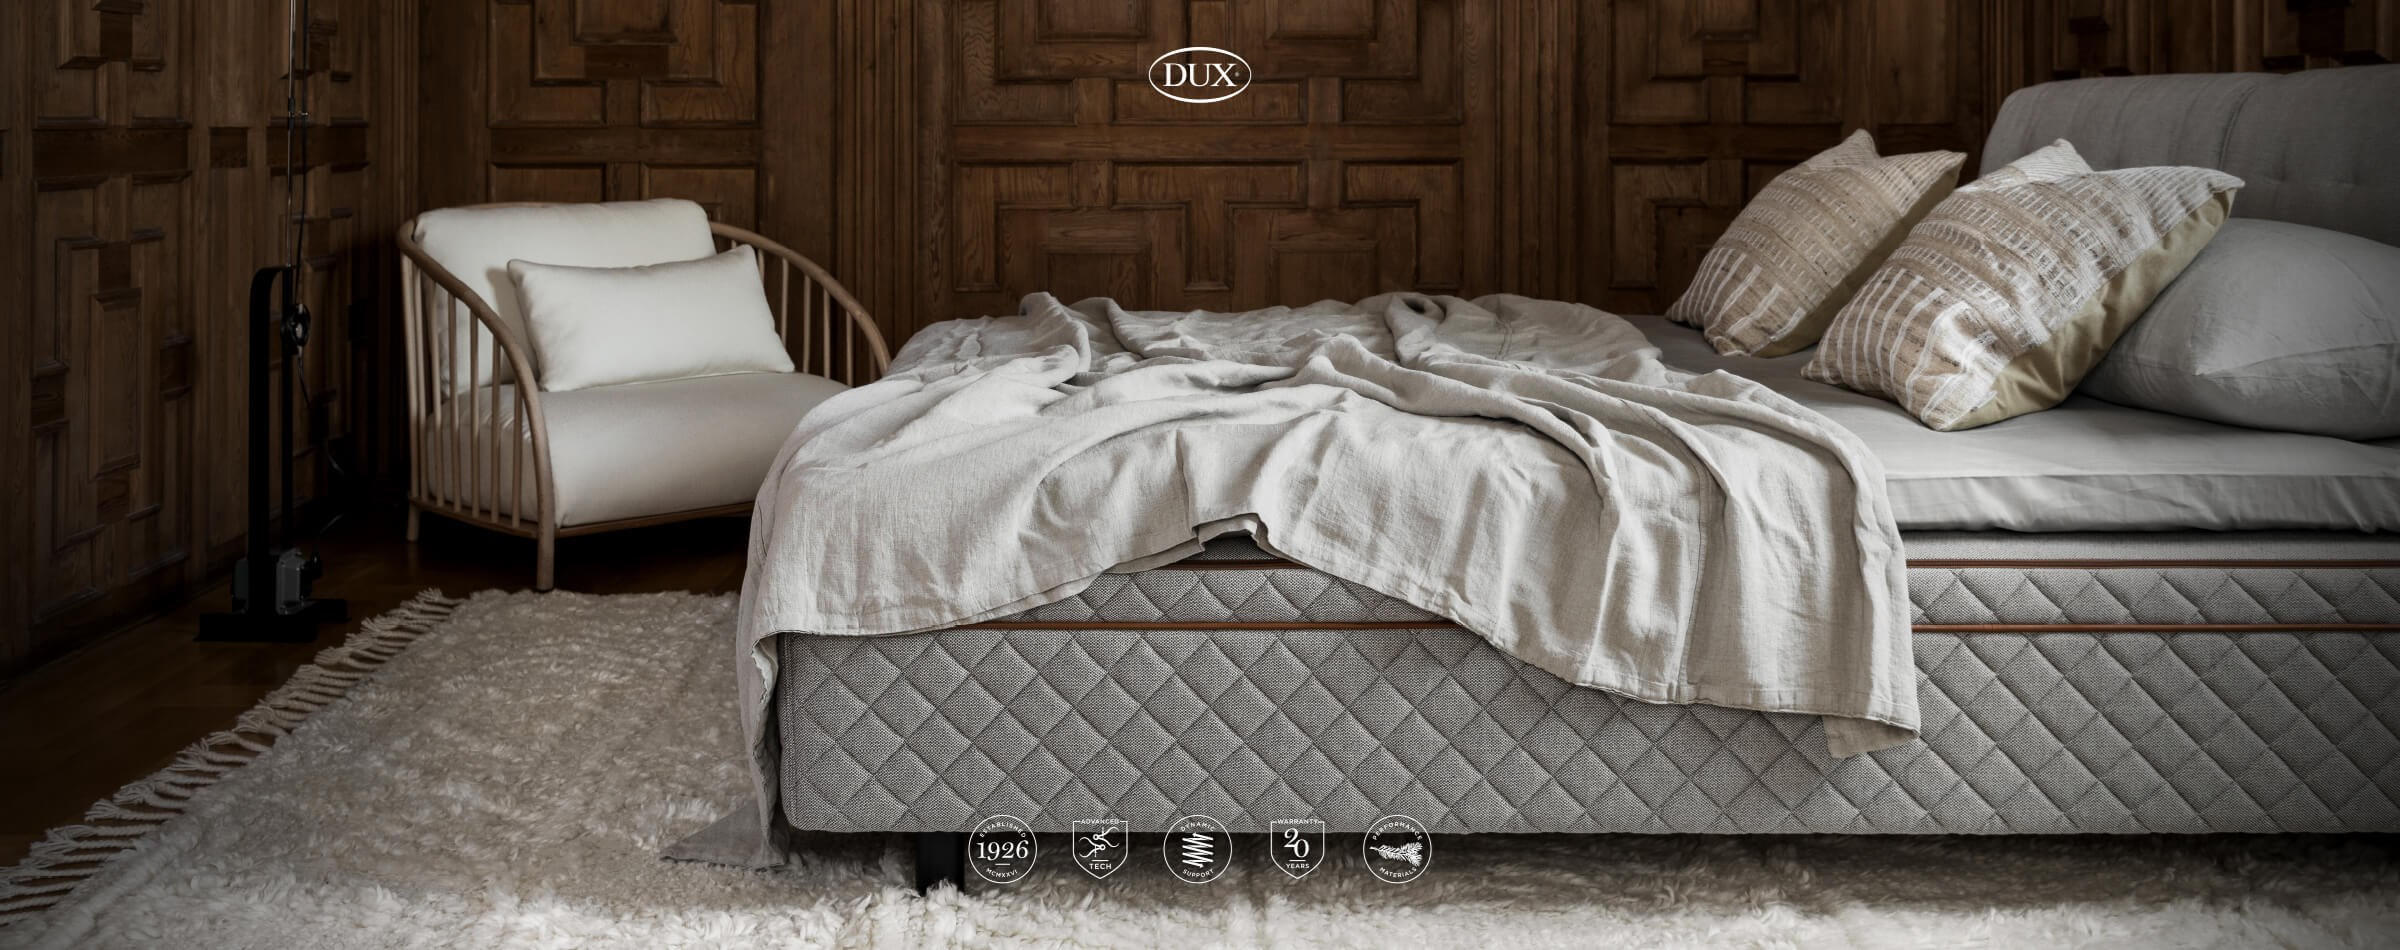 The DUX 3003 - Our most advanced single-base mattress